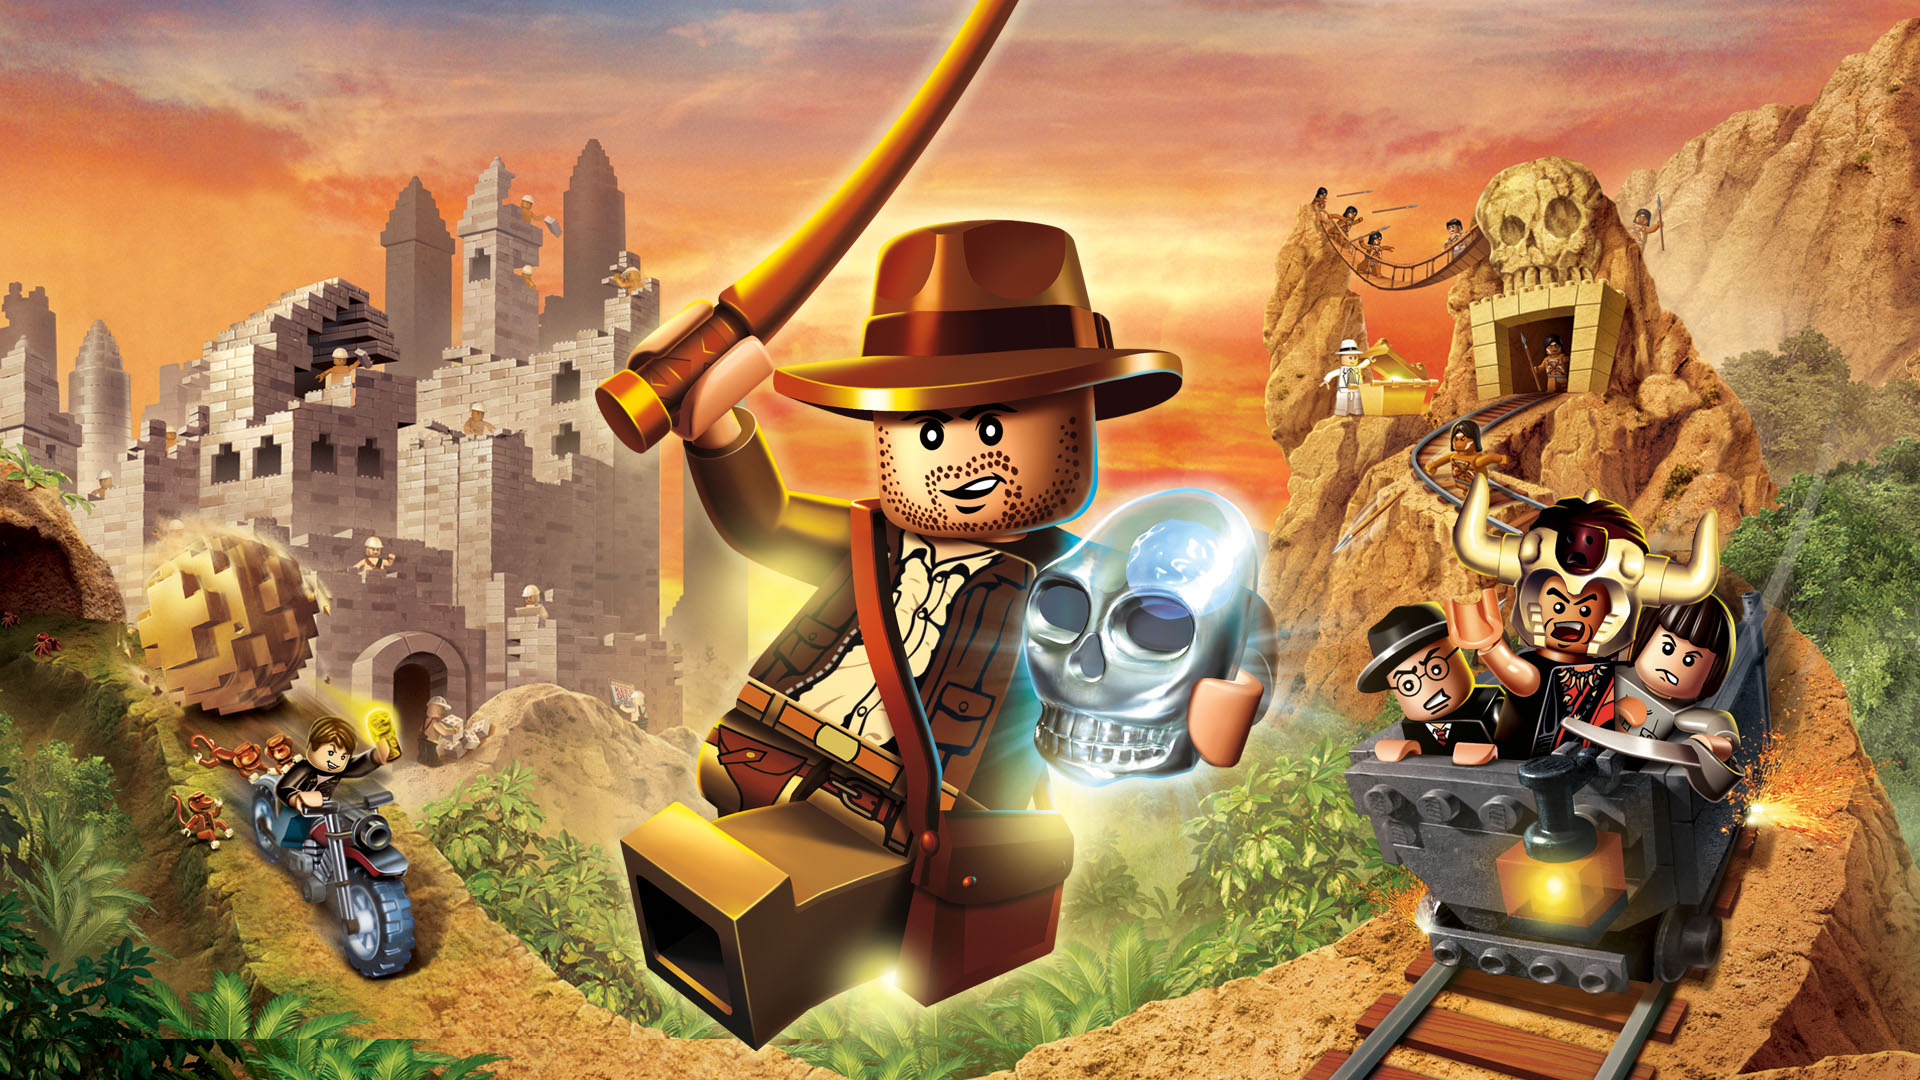 photo image SMITE and LEGO Indiana Jones 2 are now free through Games with Gold